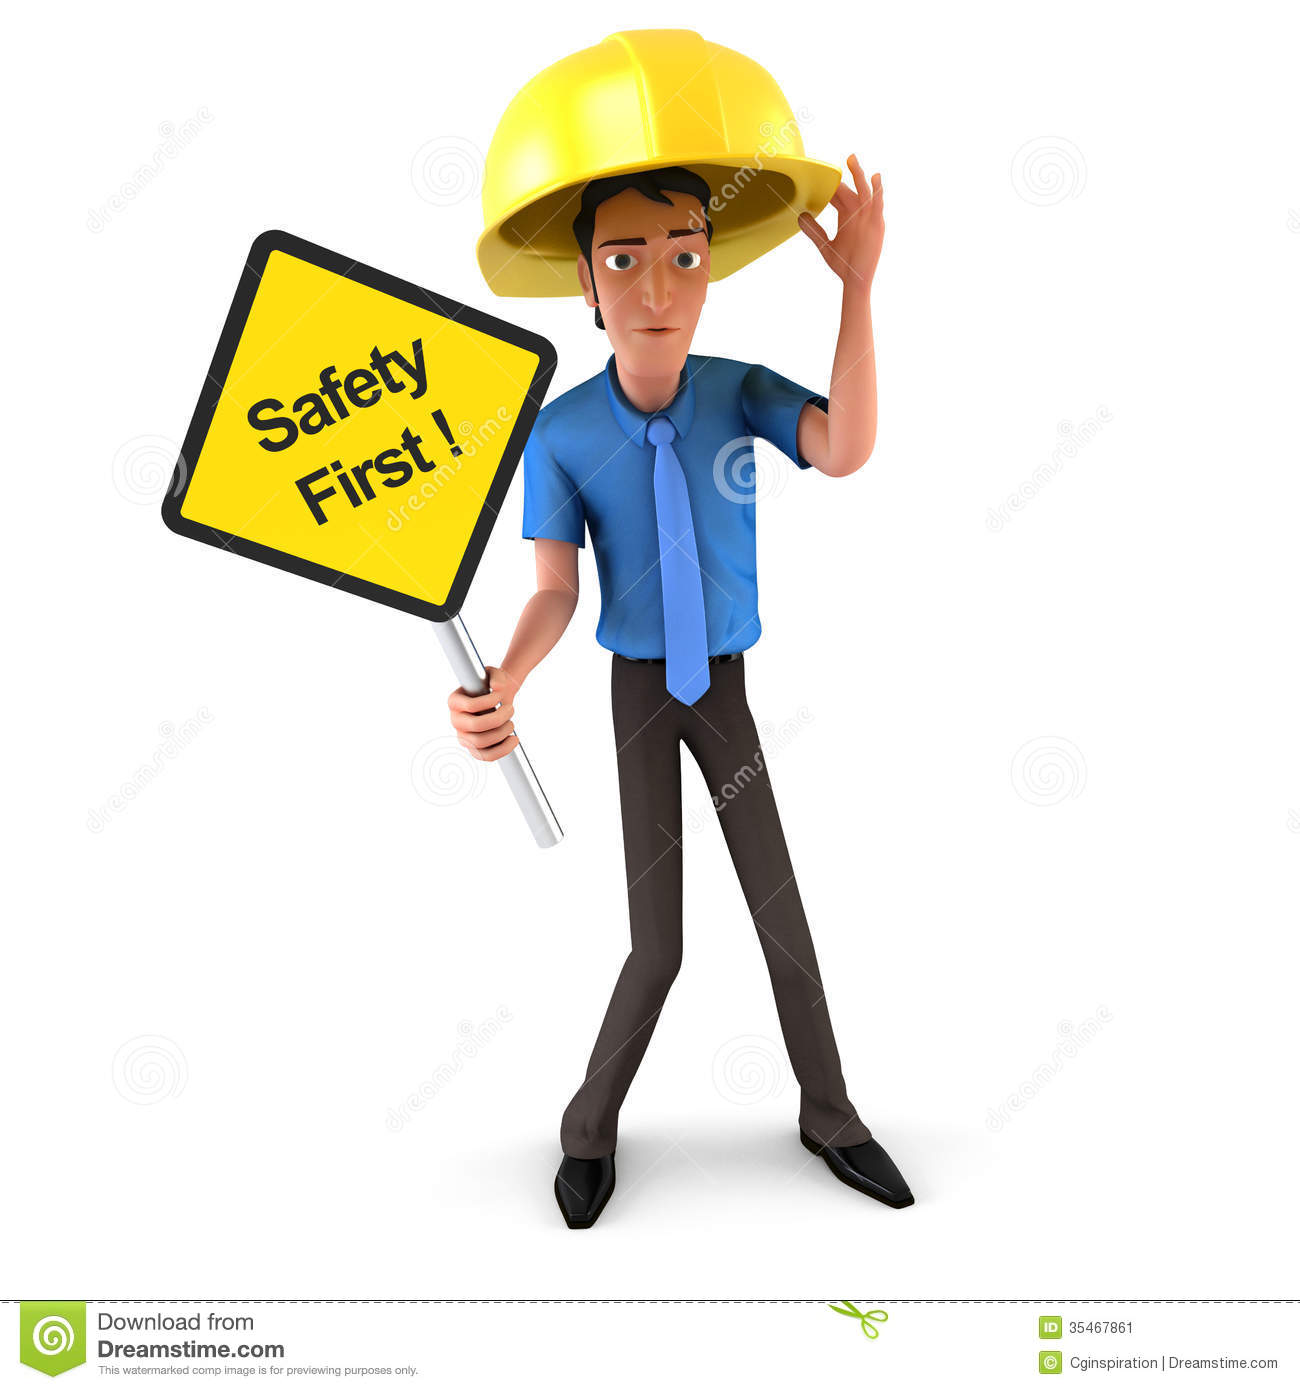 Safety clipart kid.